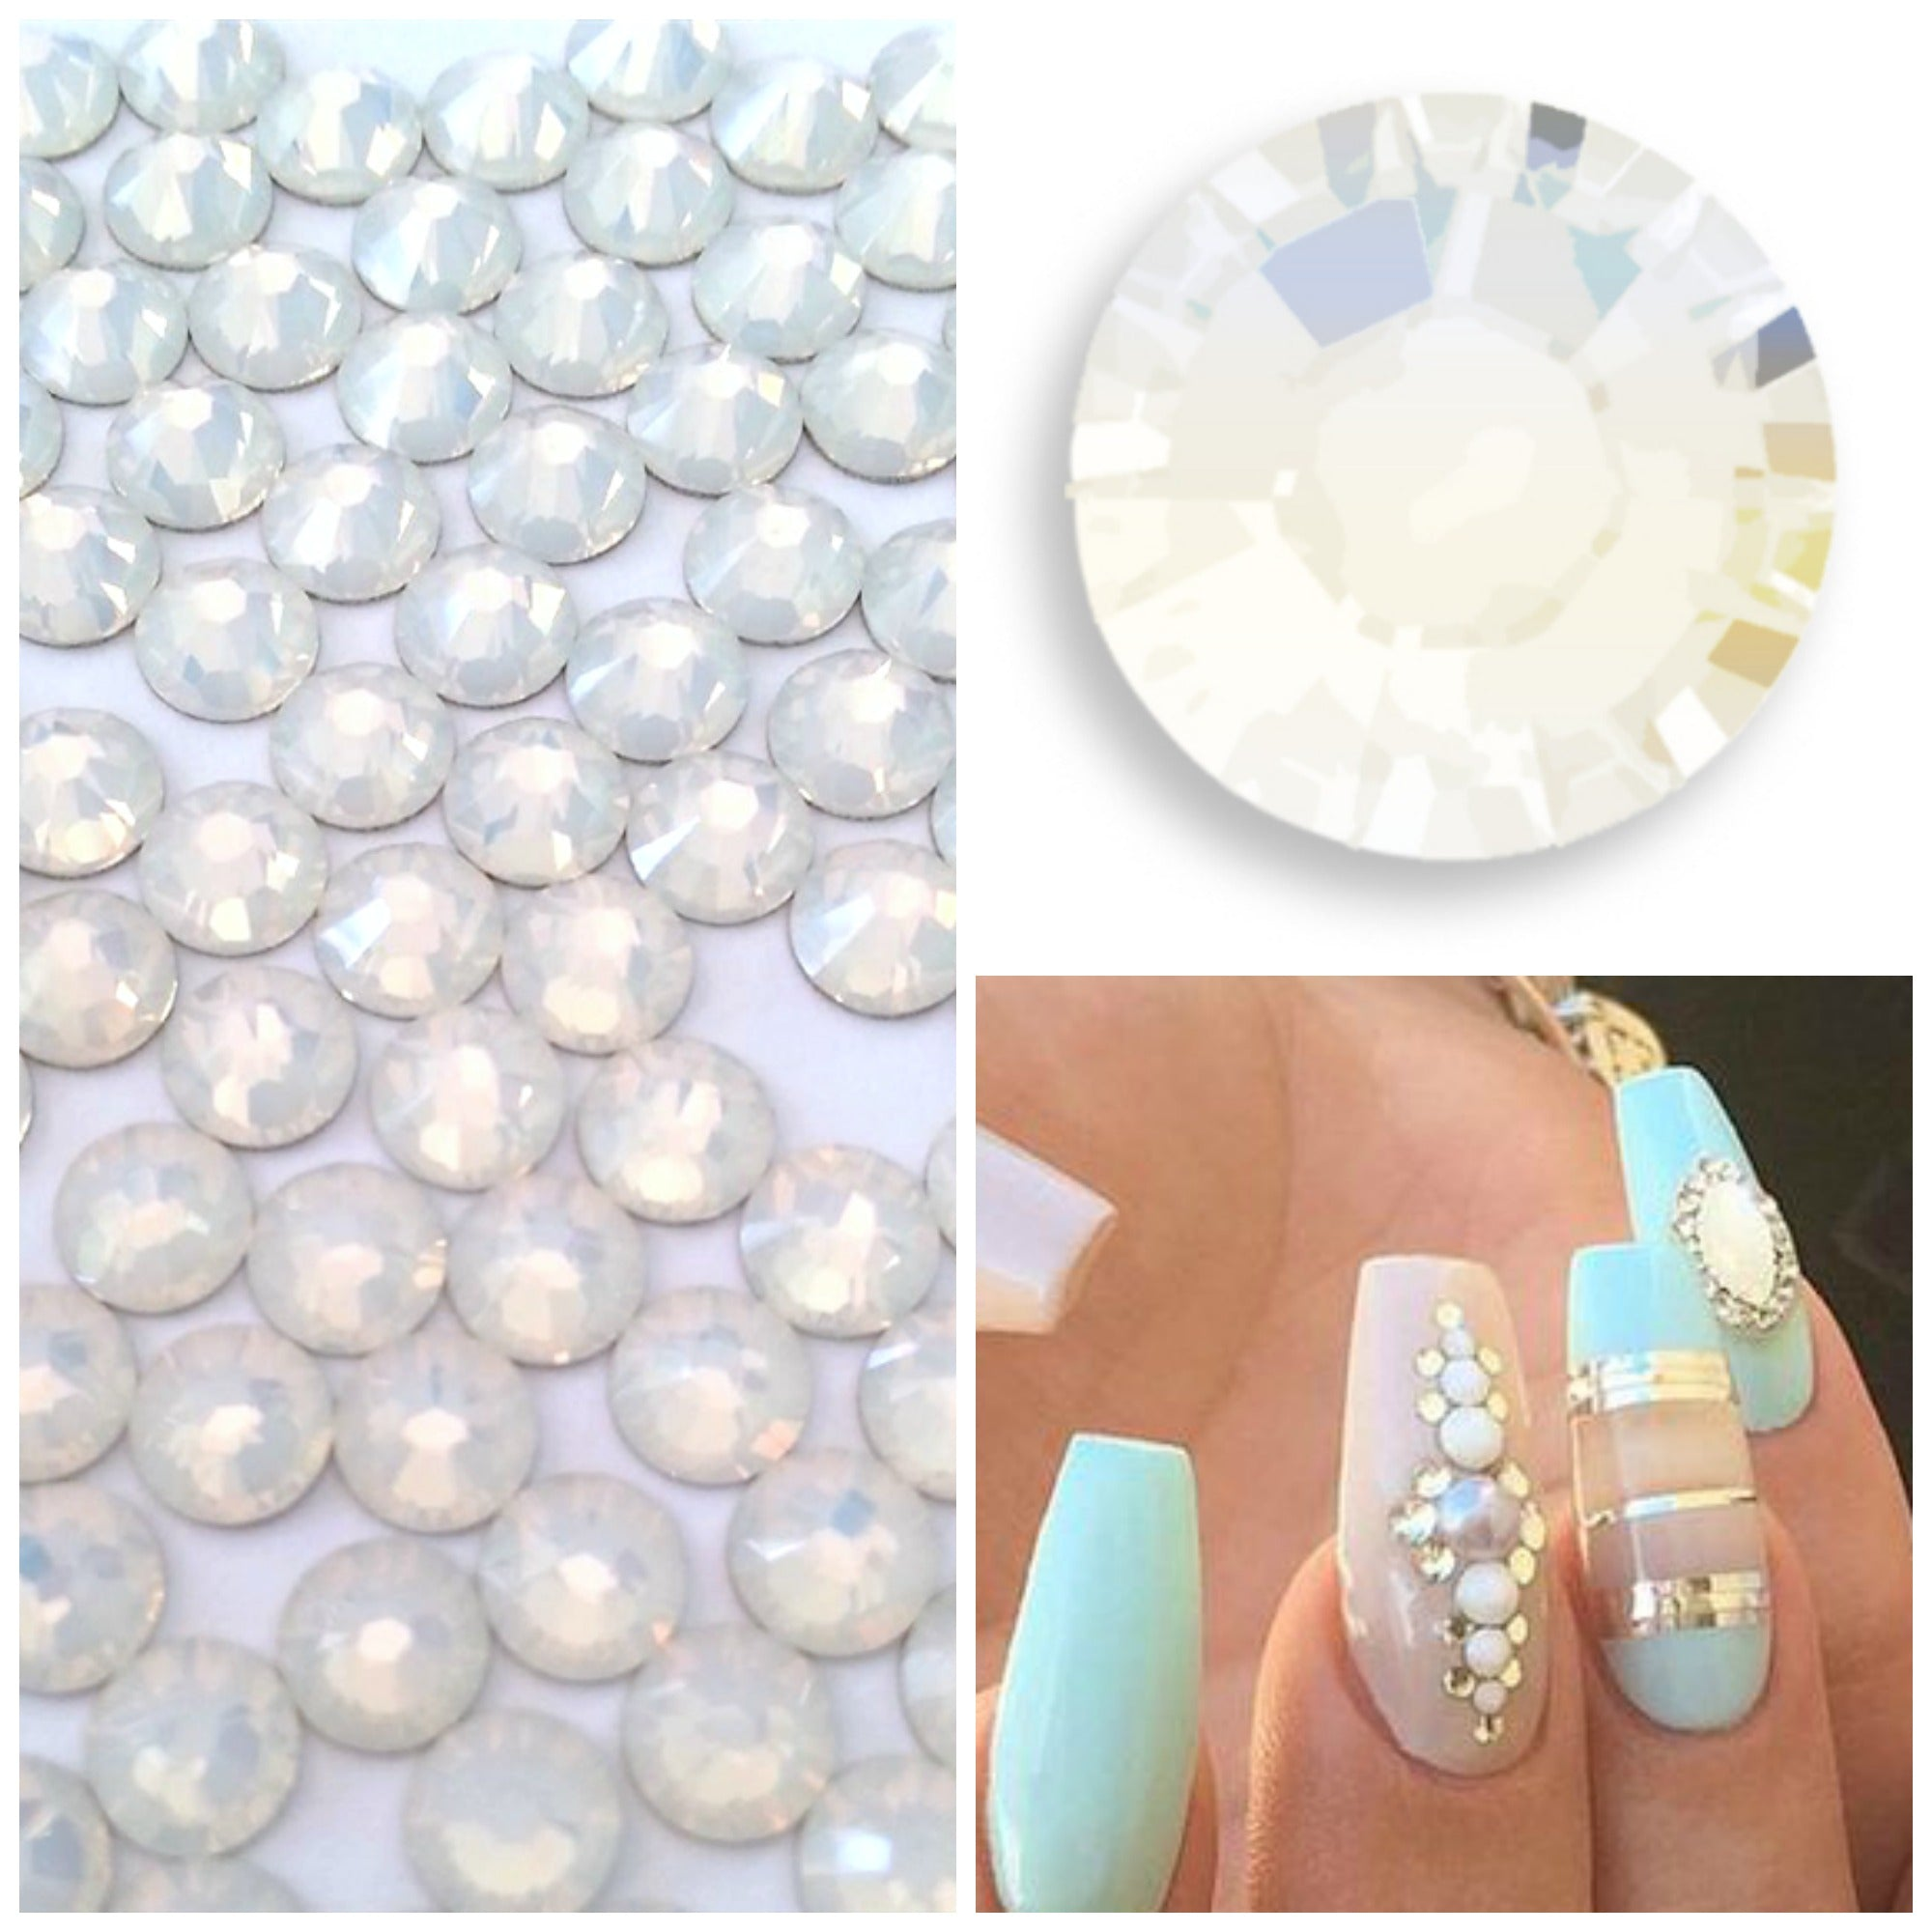 0e26bd762 ... Swarovski Opal Crystals Mixed Size Glue On Flatbacks Small to Medium -  Glitz It ...